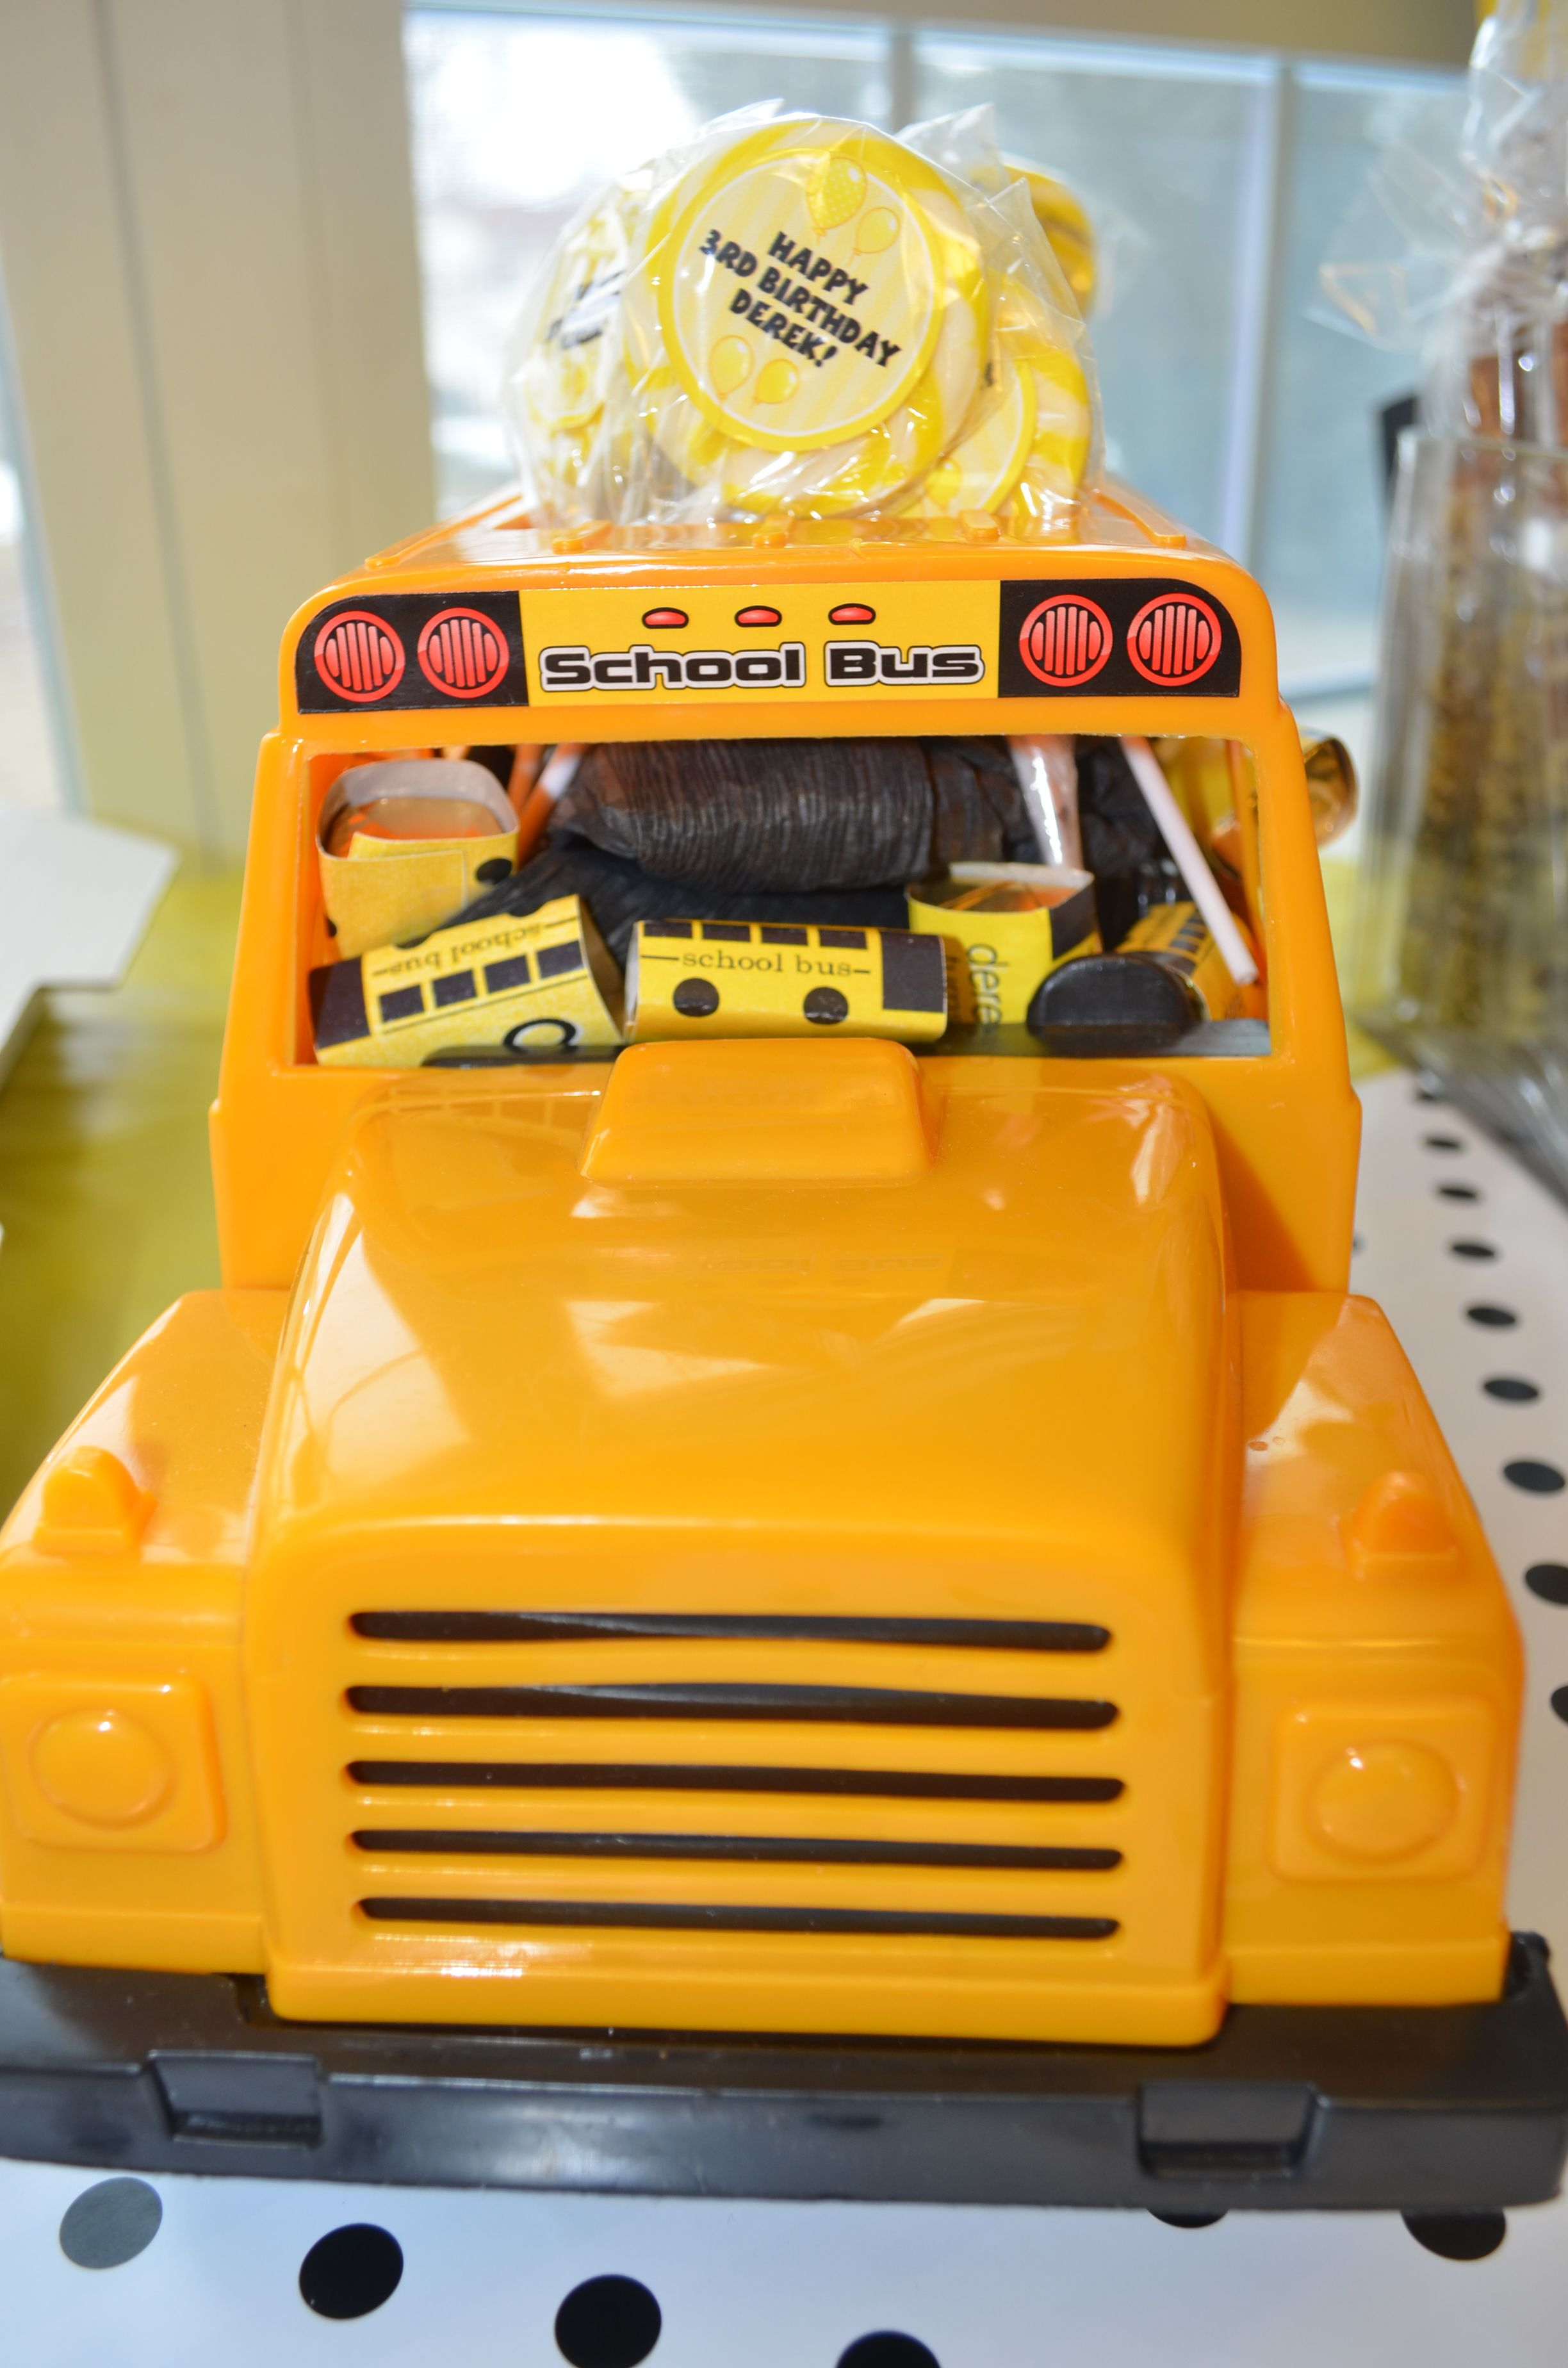 School Bus Toy Filled With Bus Nuggets And Lollipops